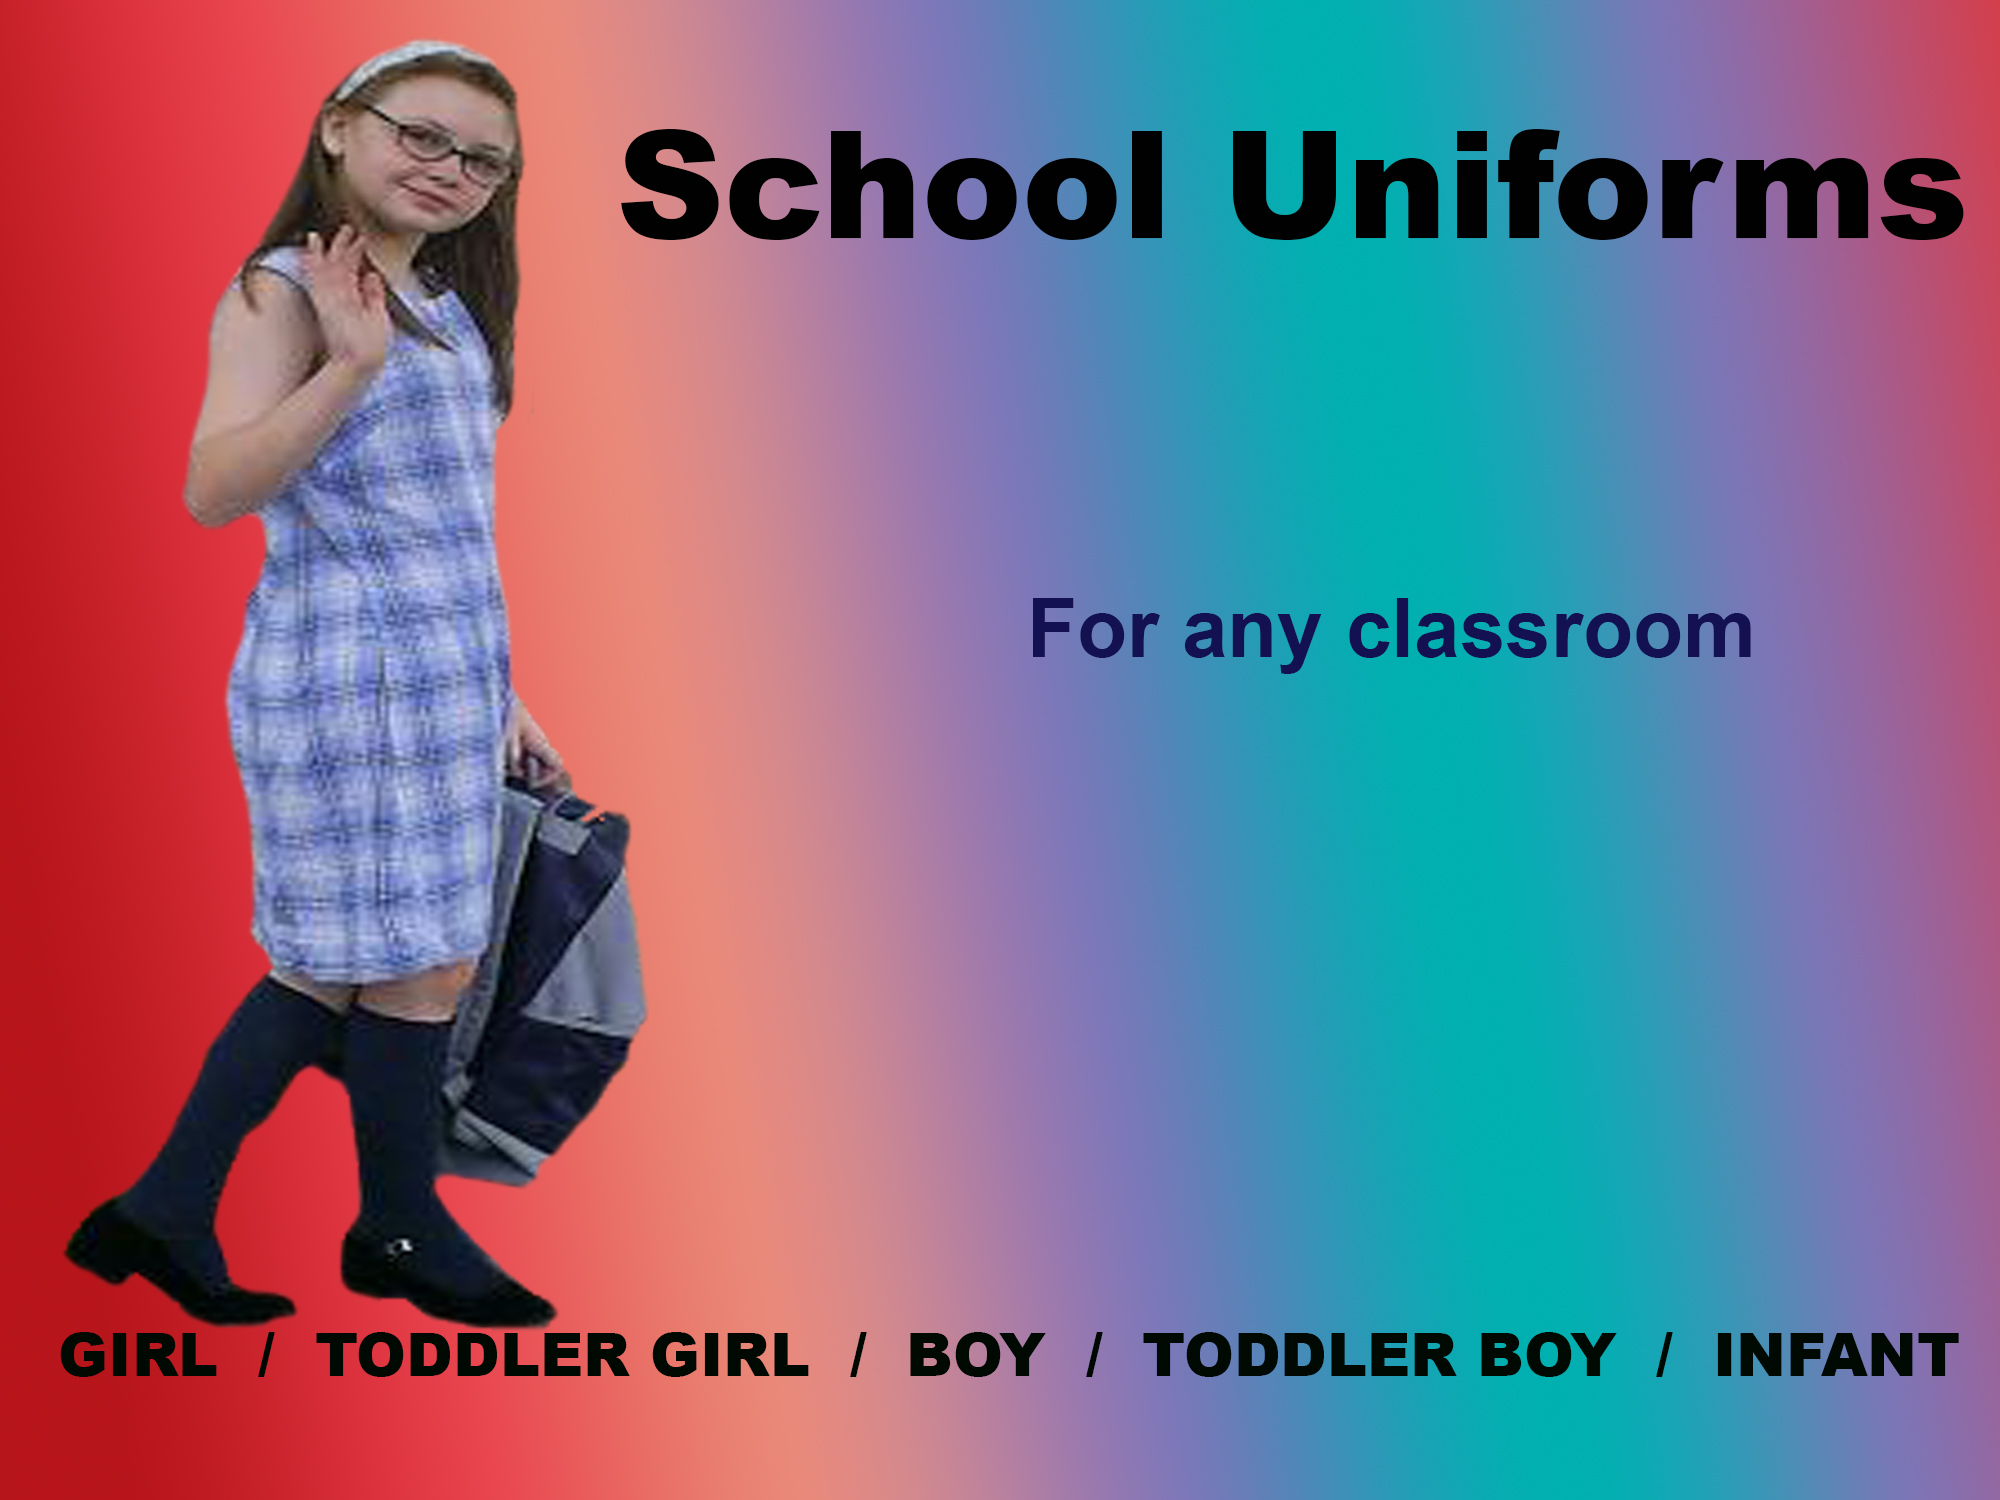 Rosebud Children's Fashions by Gothique Rose Apparel School Uniforms - For every classroom